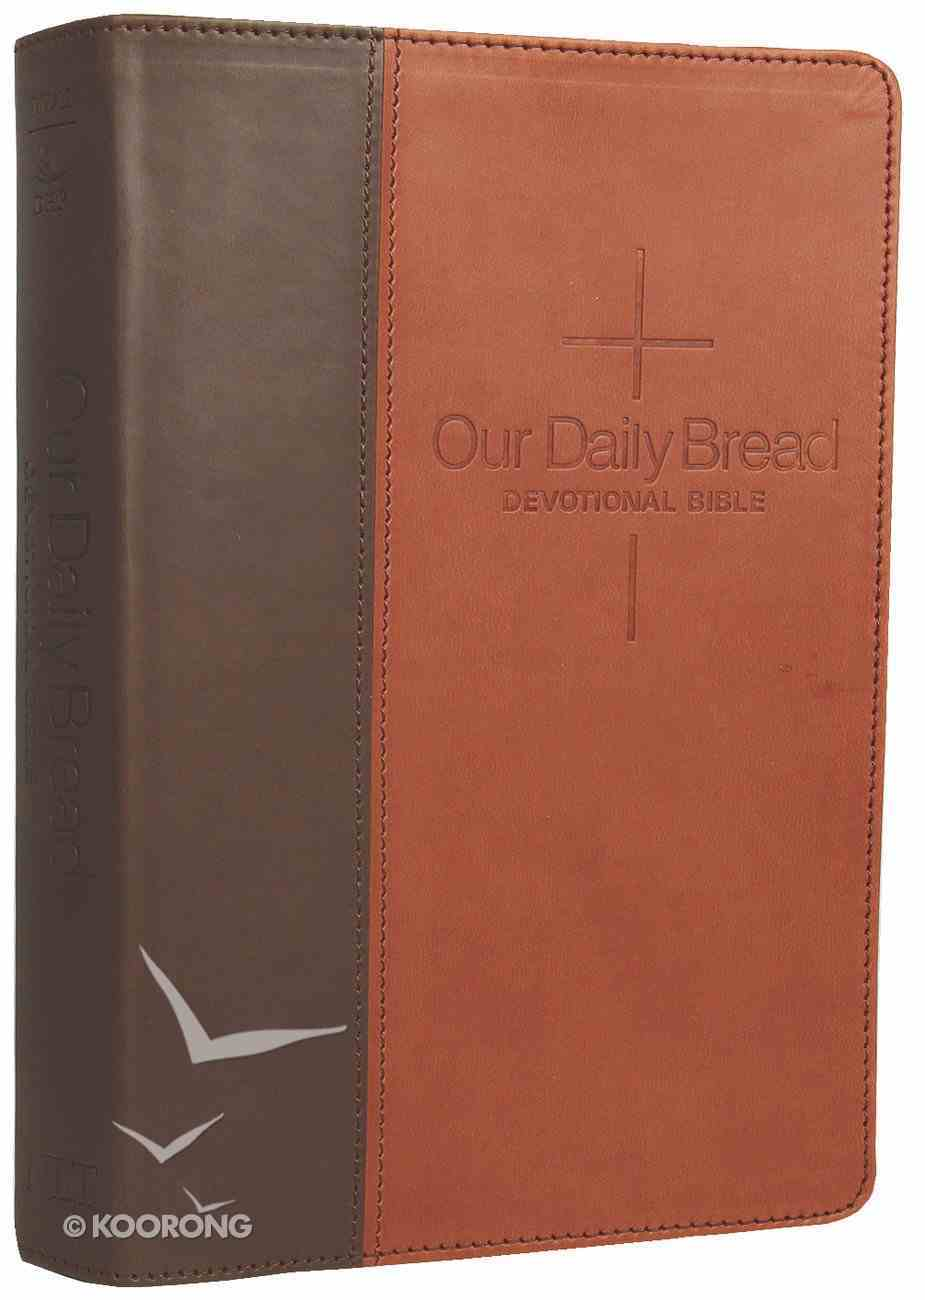 NLT Our Daily Bread Devotional Bible Brown/Tan (Black Letter Edition) Imitation Leather